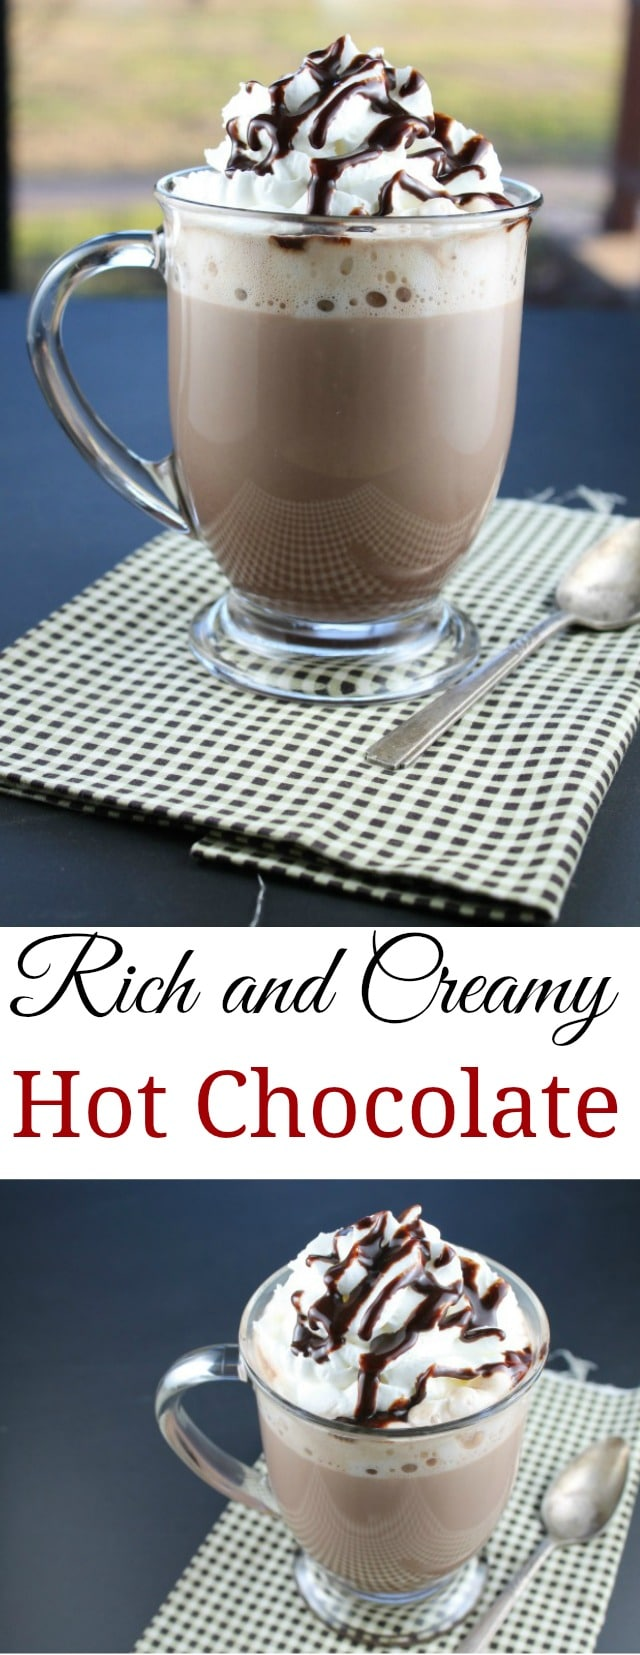 Rich and Creamy Hot Chocolate Recipe found at missinthekitchen.com